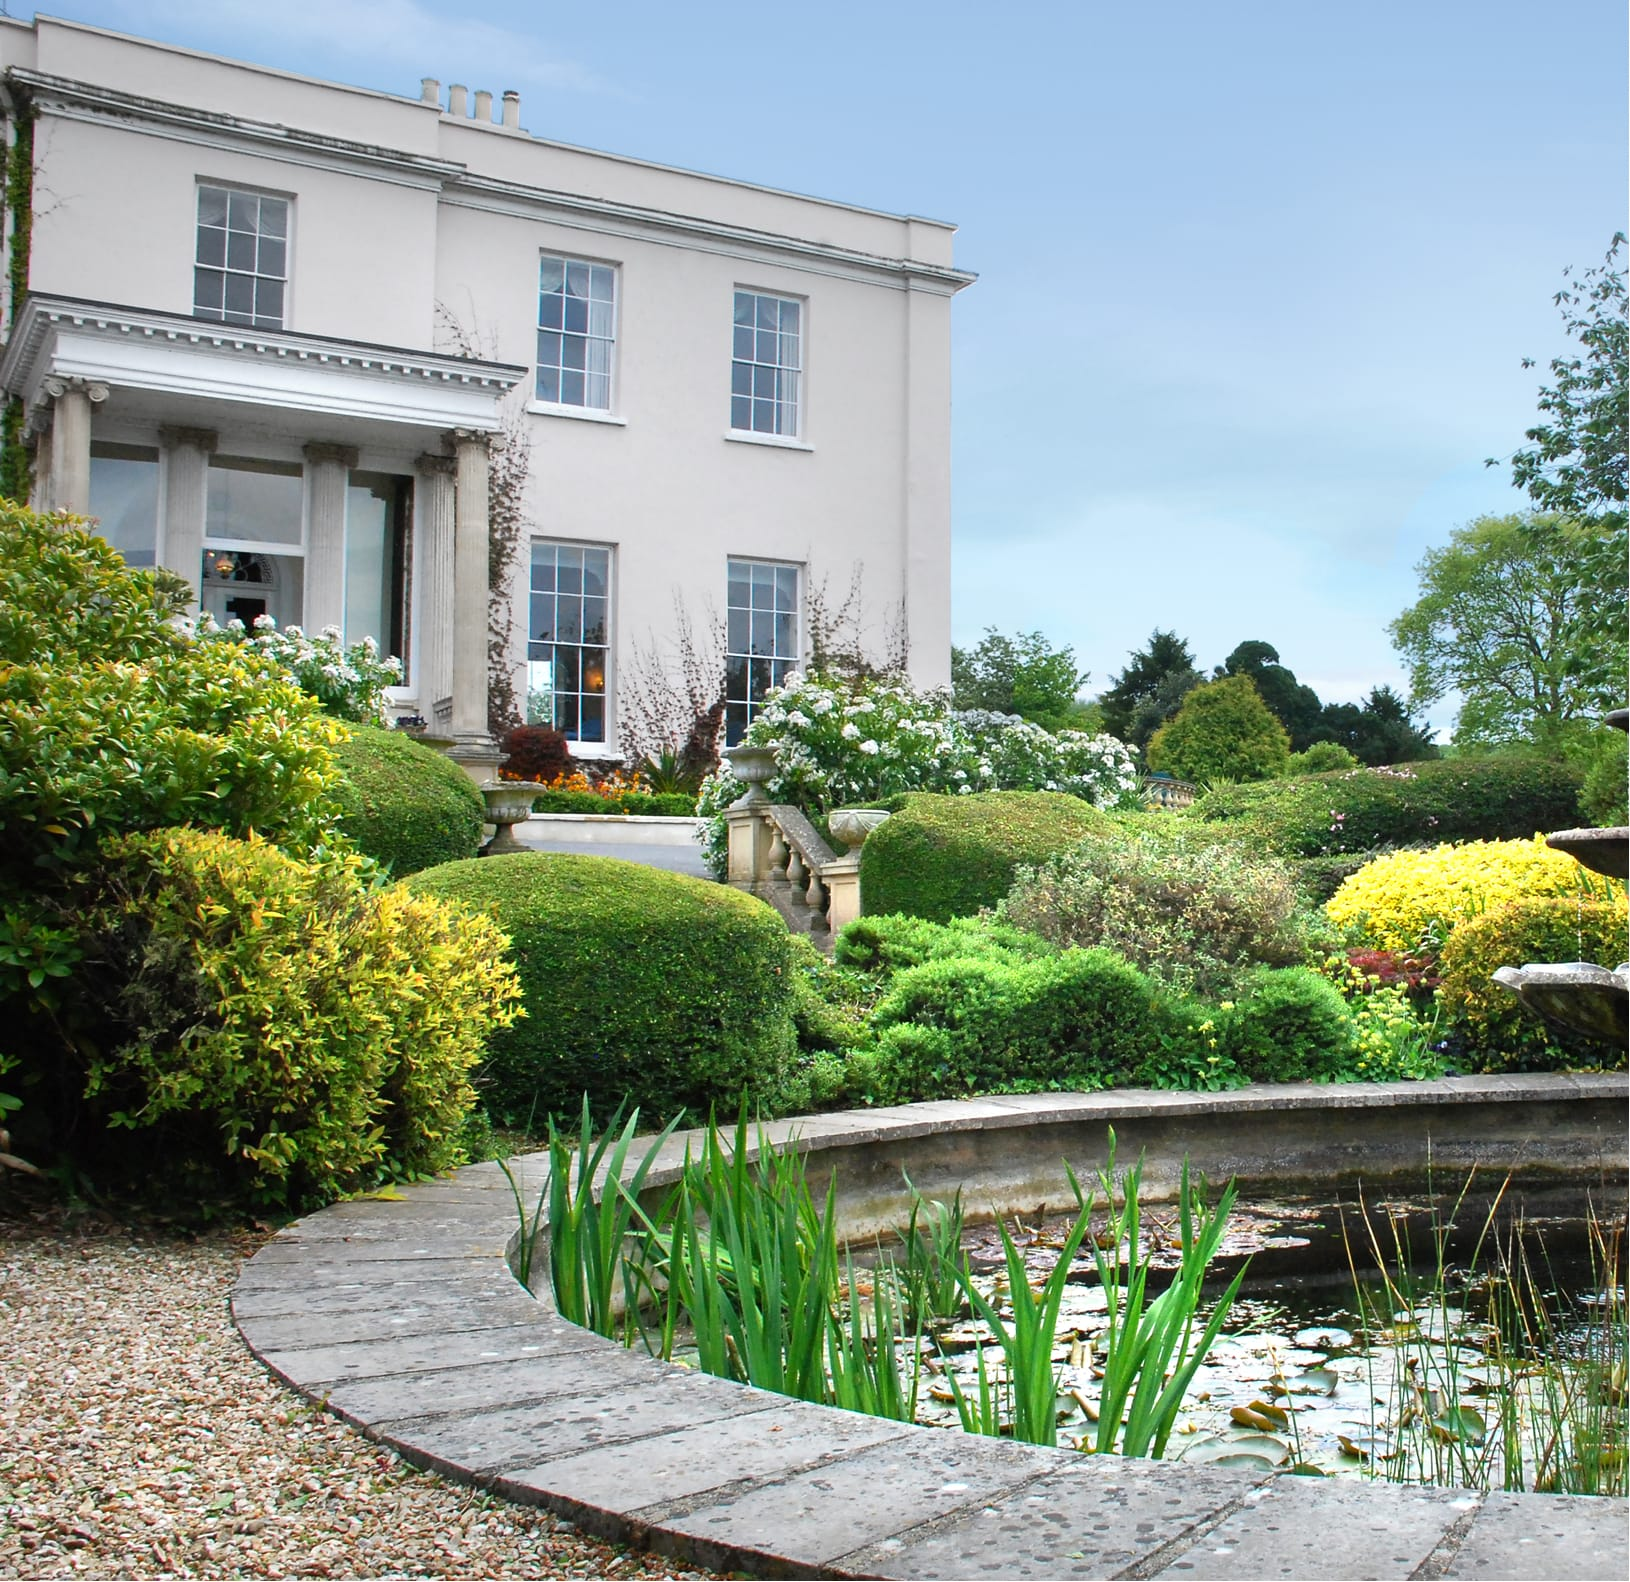 Choose to visit the Mount Hotel and Spa in Somerset as part of the Eden Hotel Collection.